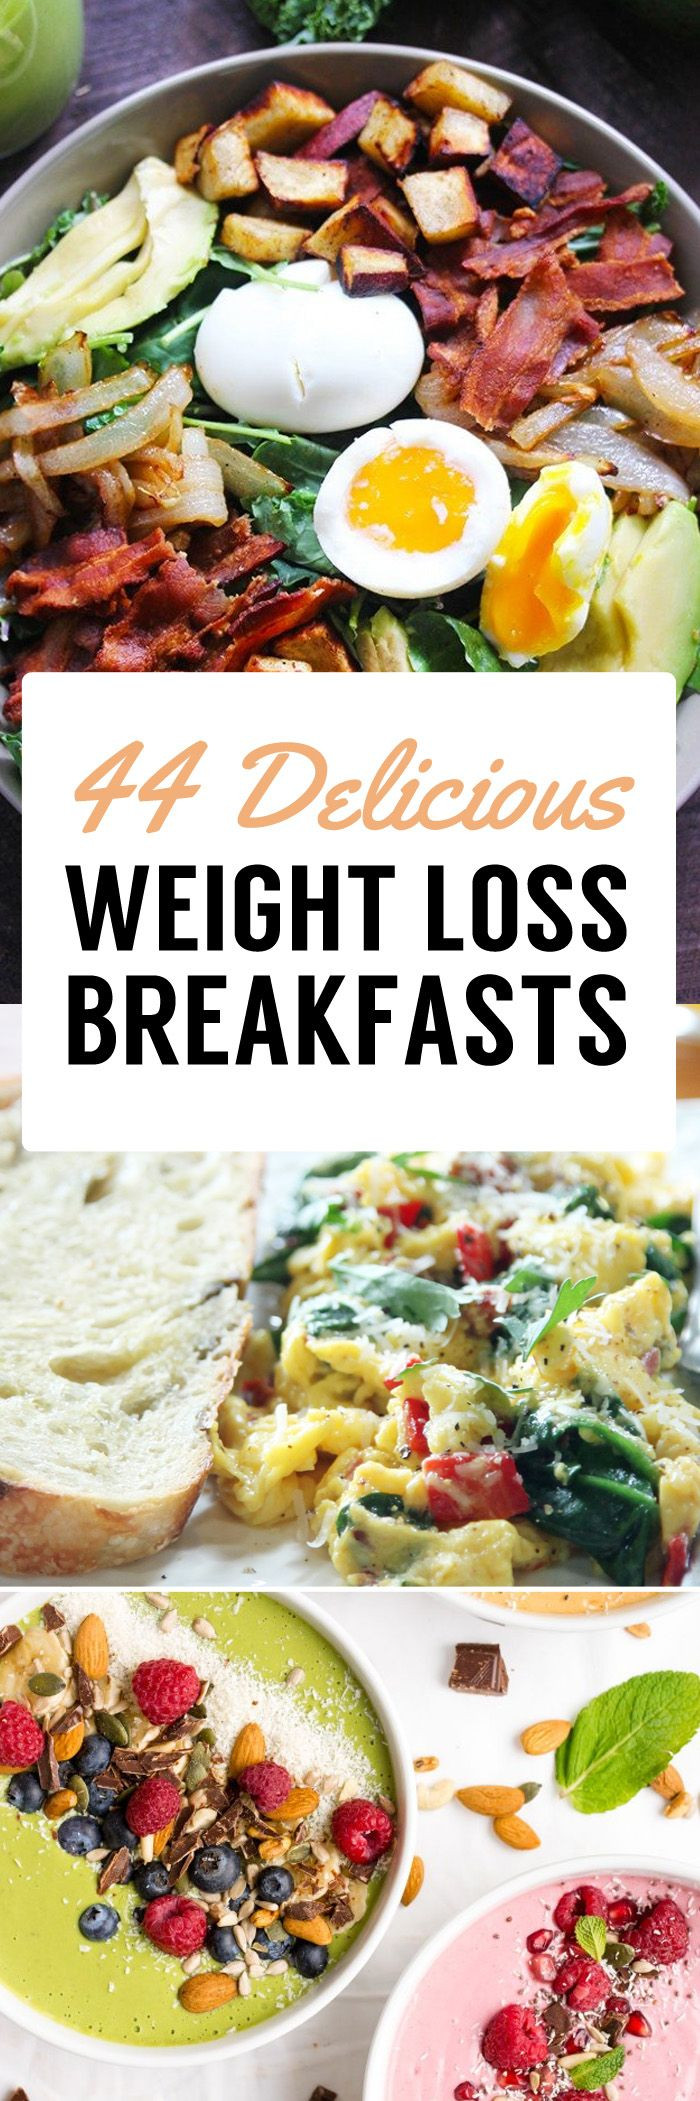 Healthy Breakfast Weight Loss  Best 25 Healthy breakfasts ideas on Pinterest